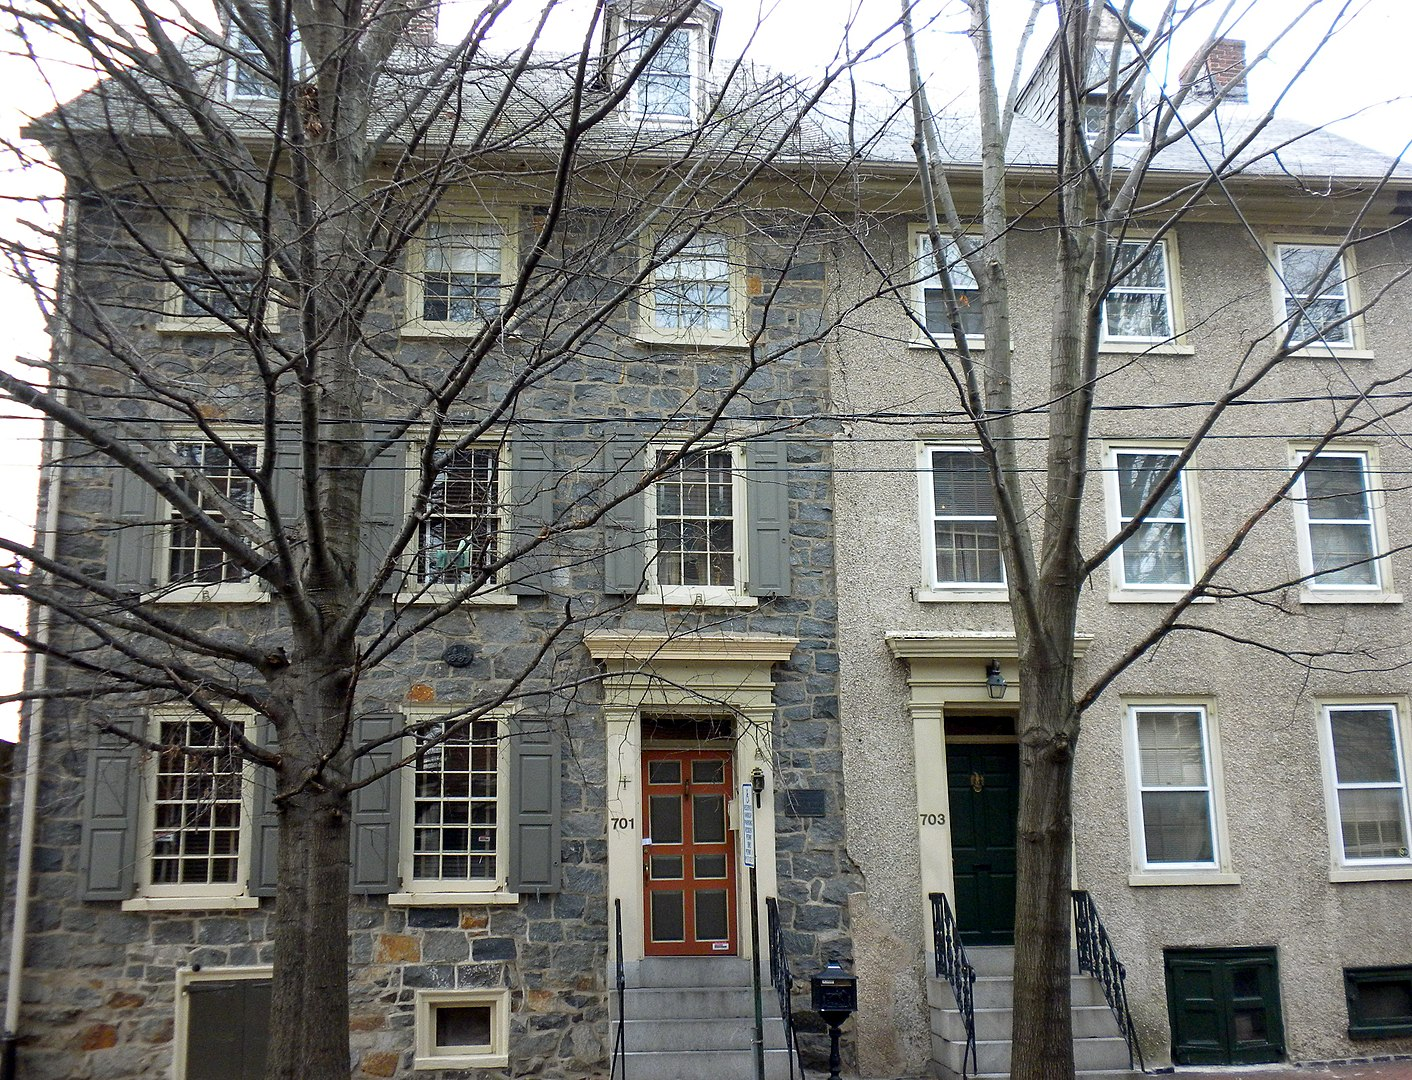 Woodward Houses (circa 1754 and 1760) located at 701-703 West St., Wilmington, Delaware.